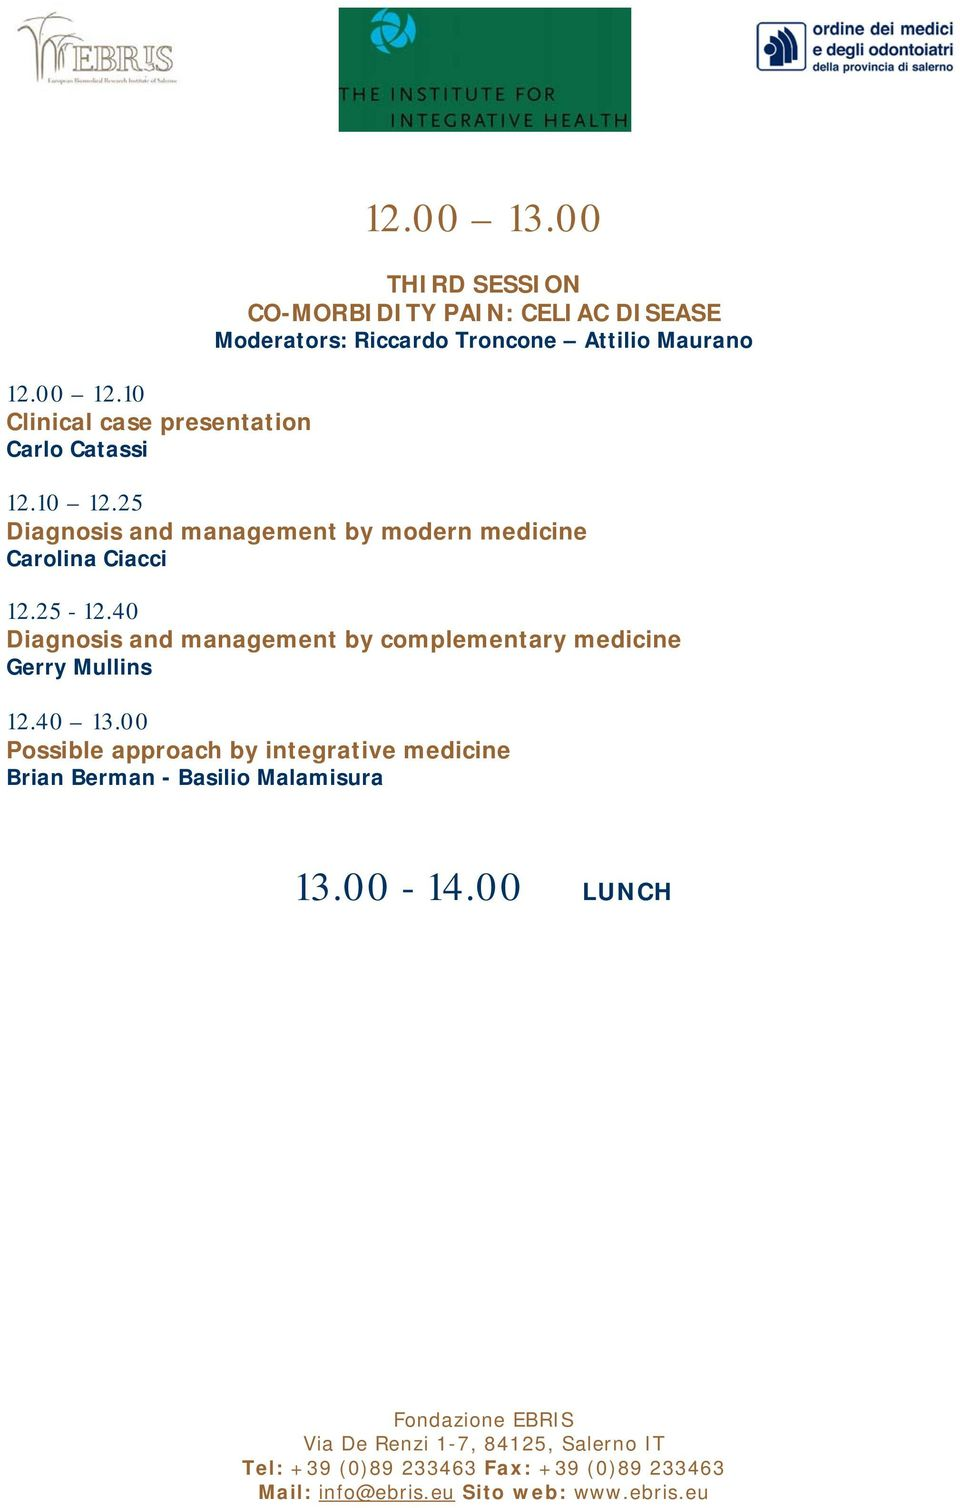 10 12.25 Diagnosis and management by modern medicine Carolina Ciacci 12.25-12.